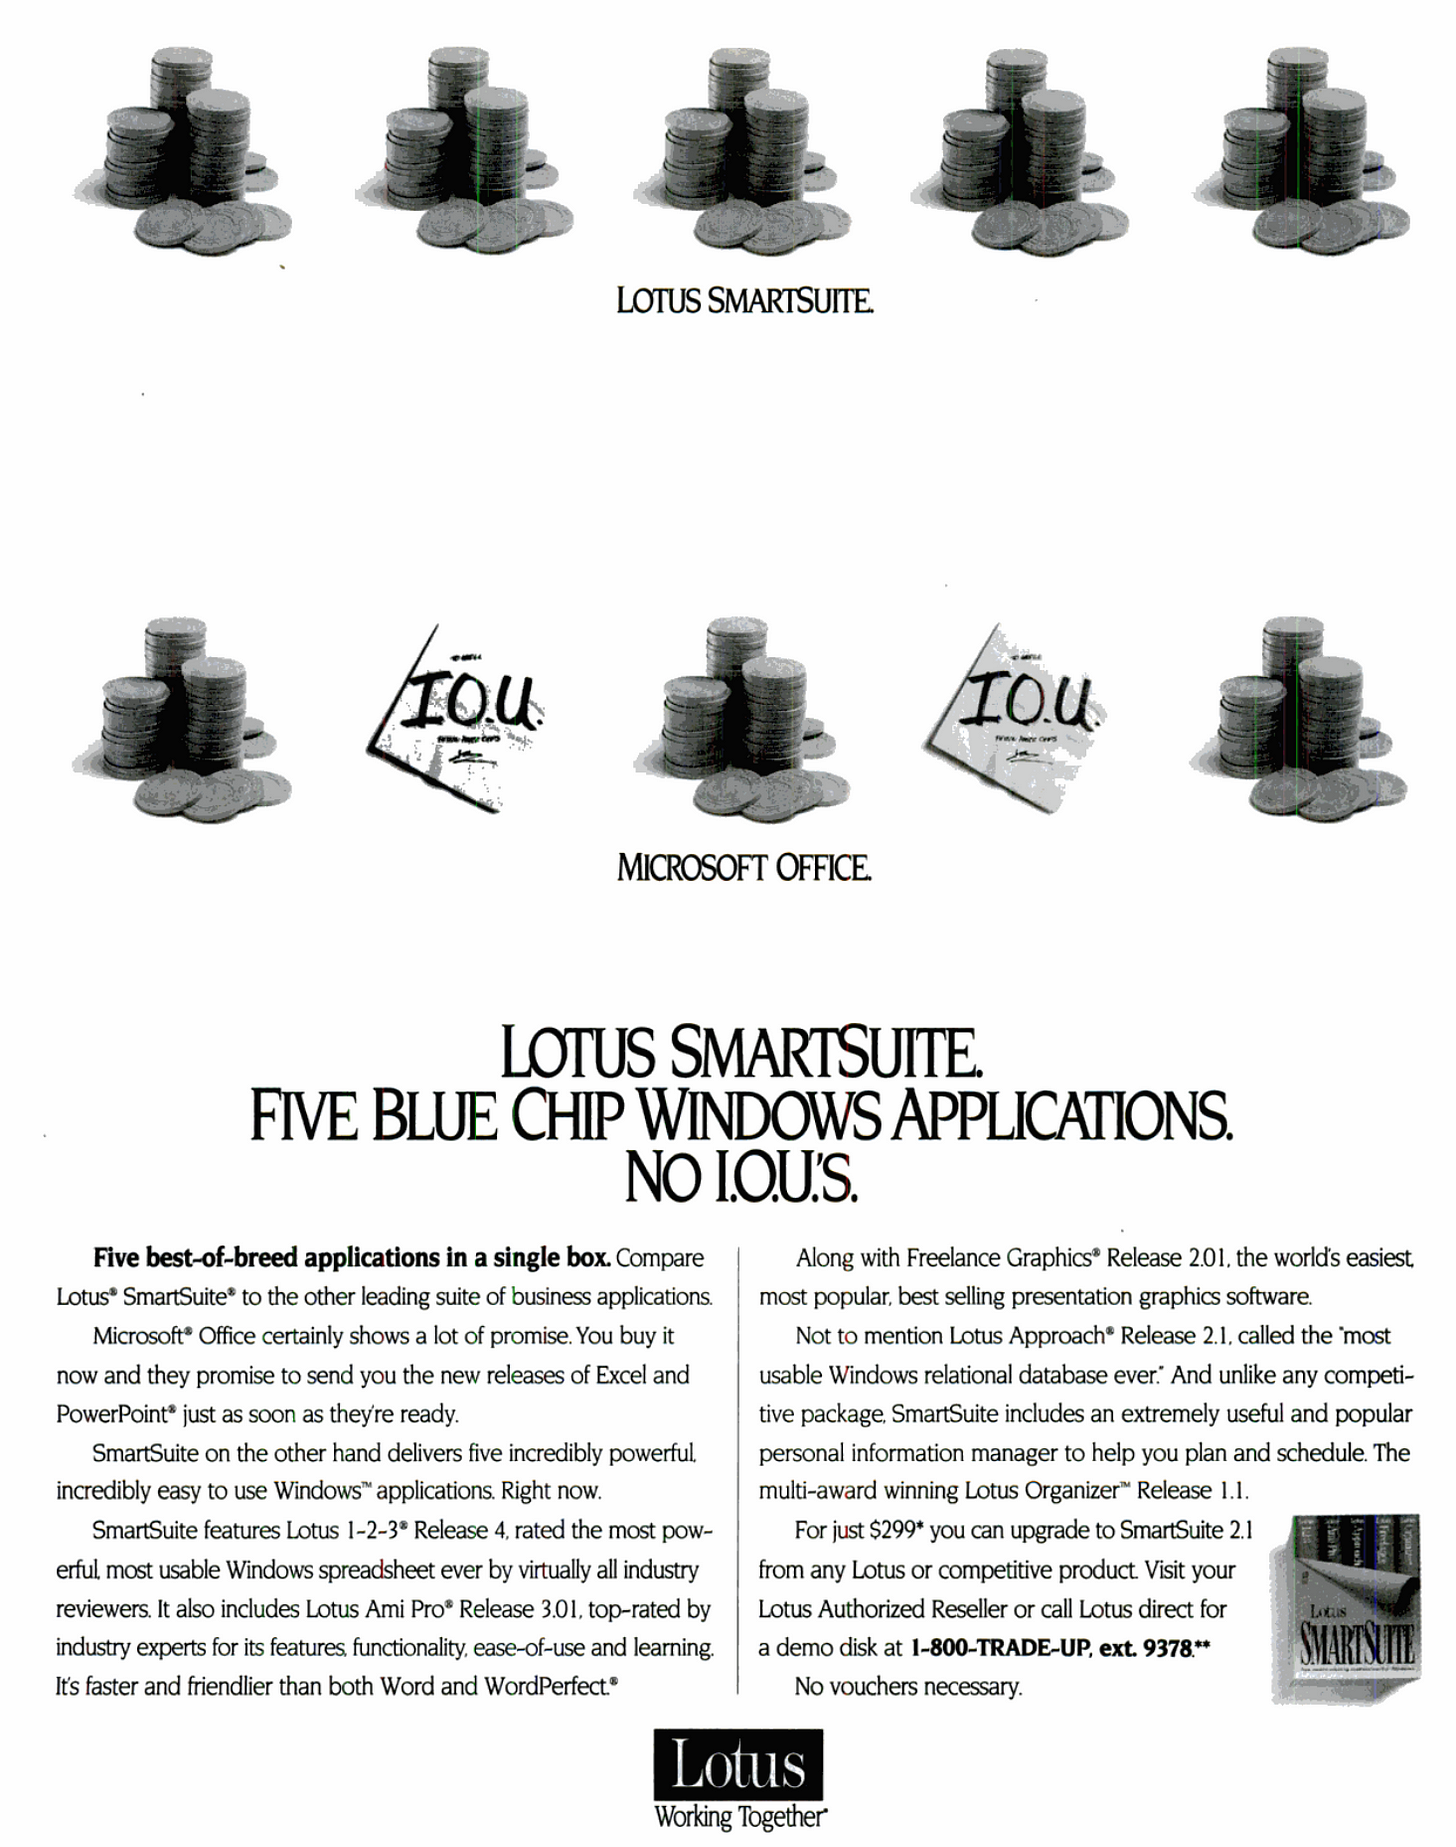 Full page advertisement. Lotus SmartSuite. Five Blue Chip Windows Applications. No I.O.U.'S.